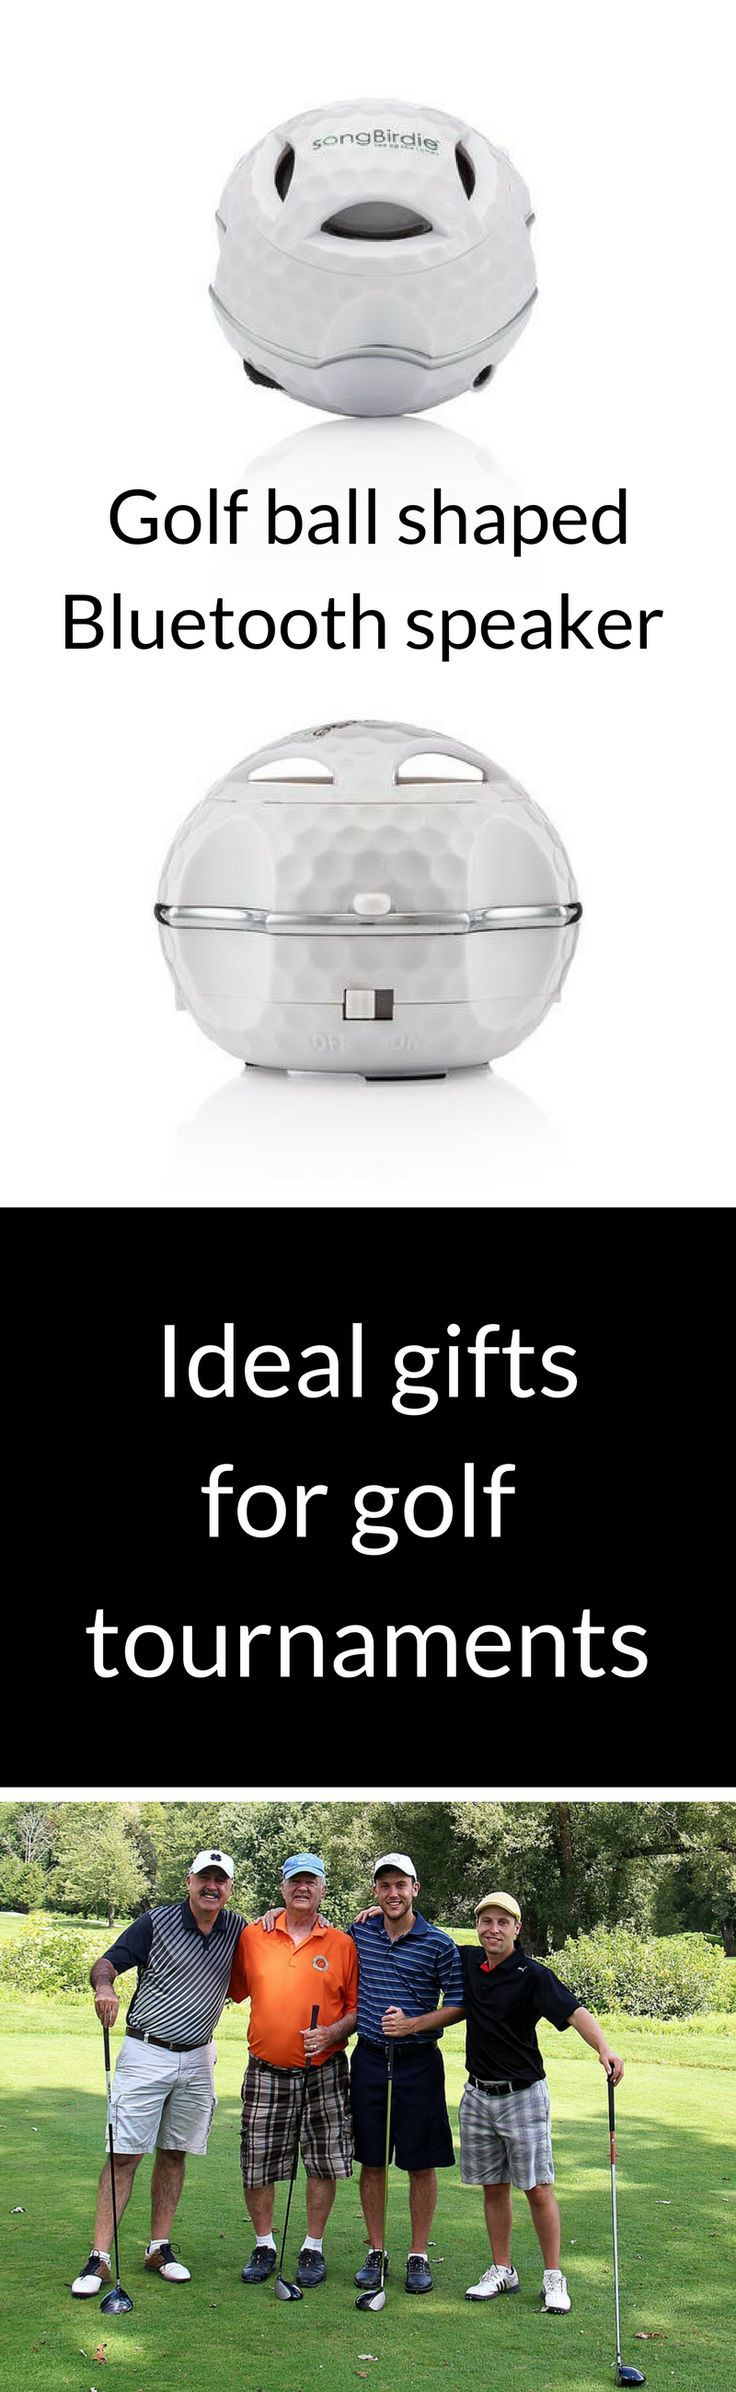 A Golf ball shaped Bluetooth speaker! Ideal for golf tournaments - customizable and small and convenient. A Unique gift for your next big charity golf event.